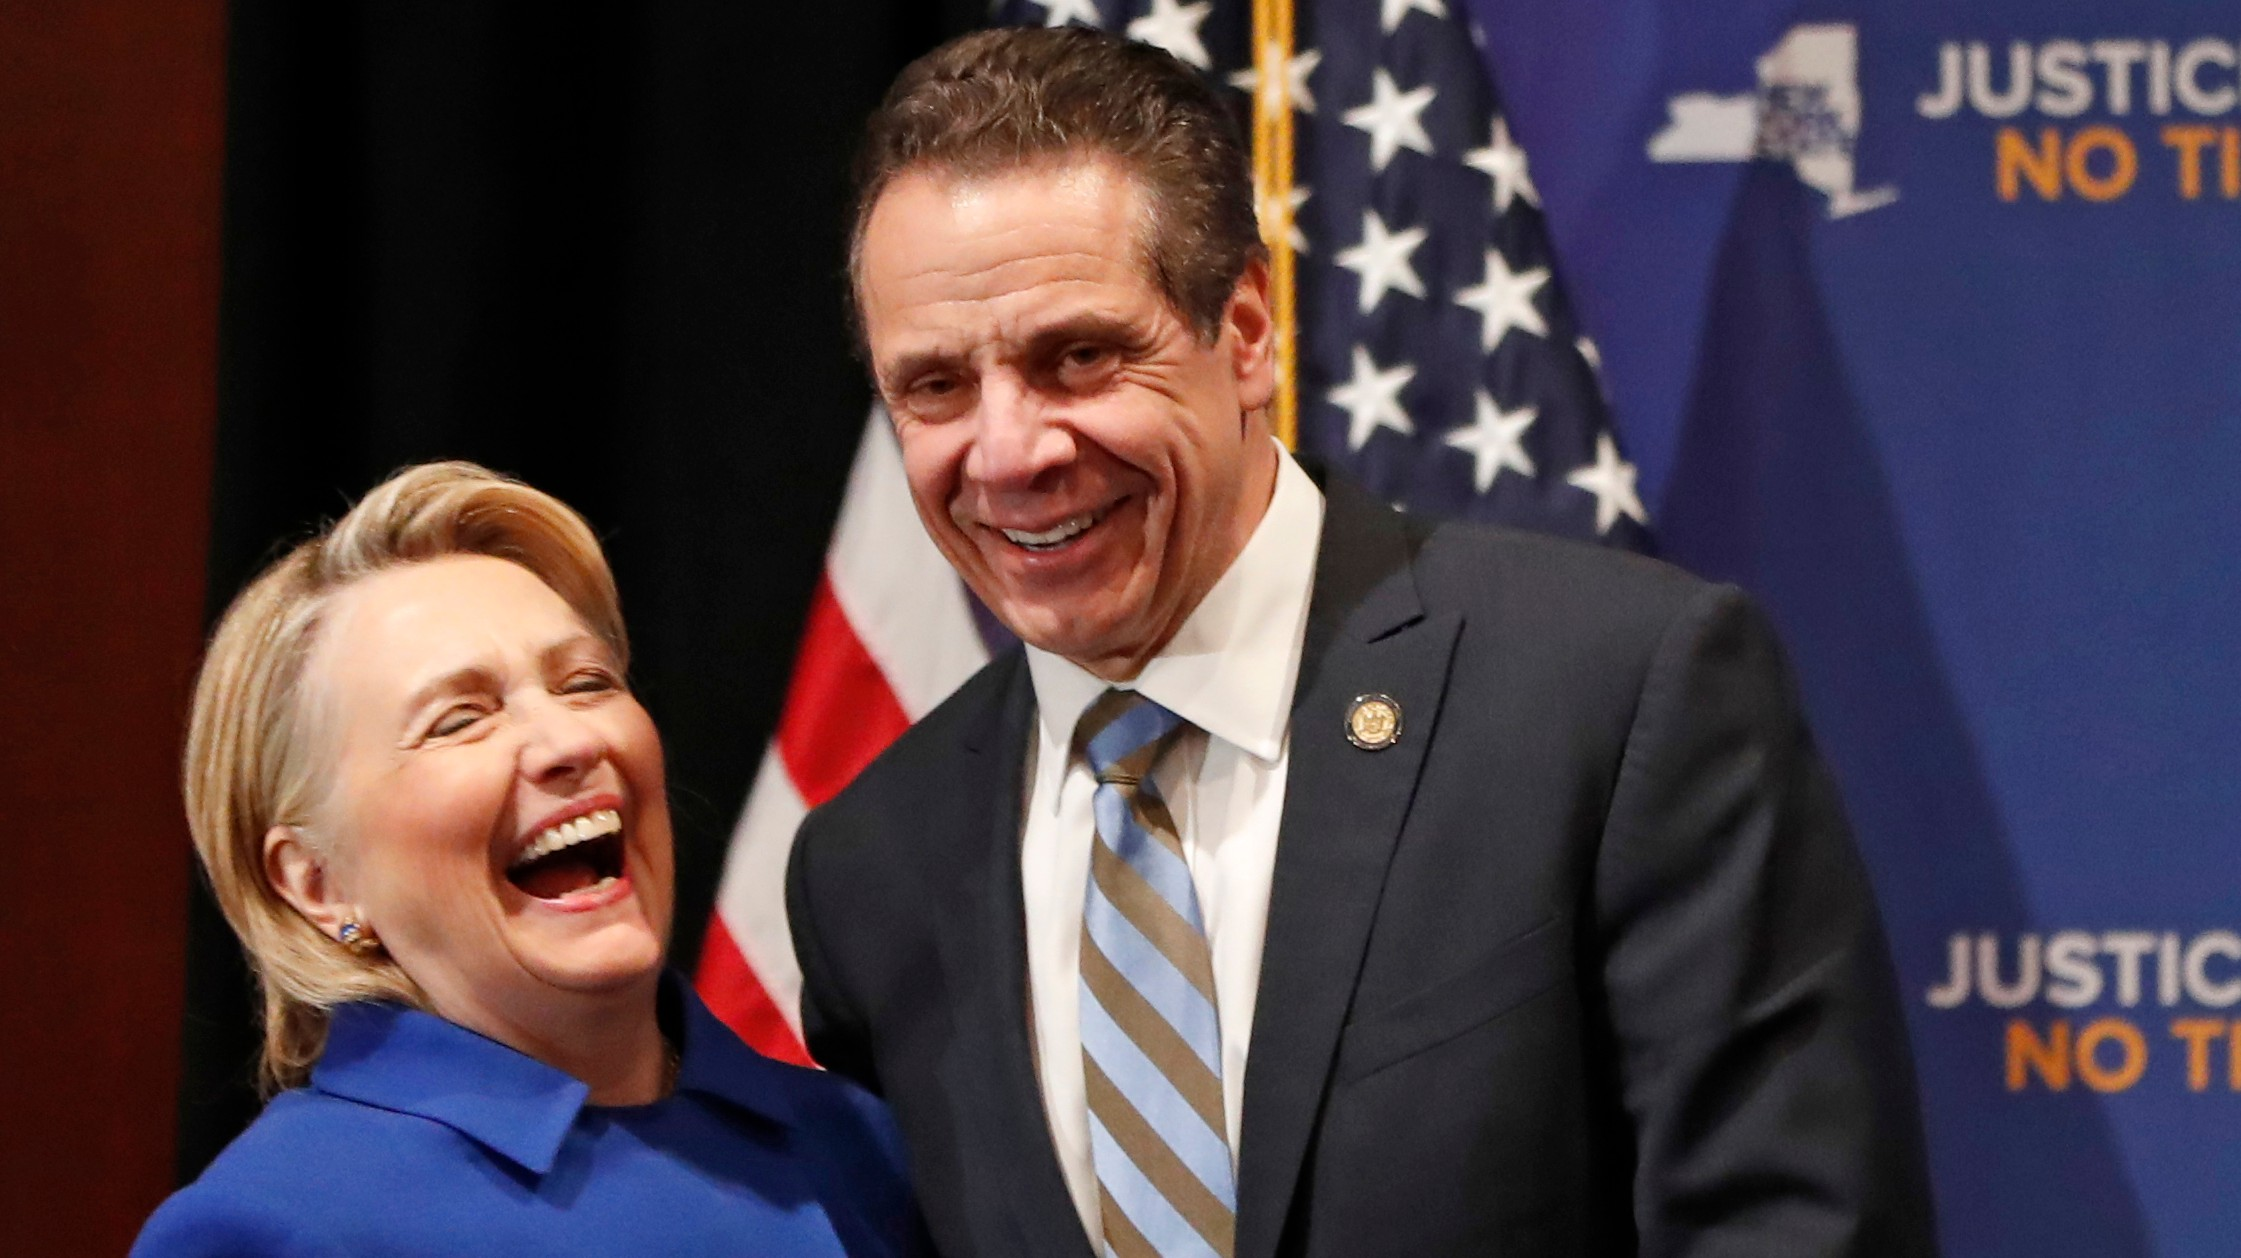 , Turns Out That Viral 'NY Tough' Video Shared By Cuomo and Hillary Clinton Was Ripped Off From Indie Filmmakers, Saubio Making Wealth